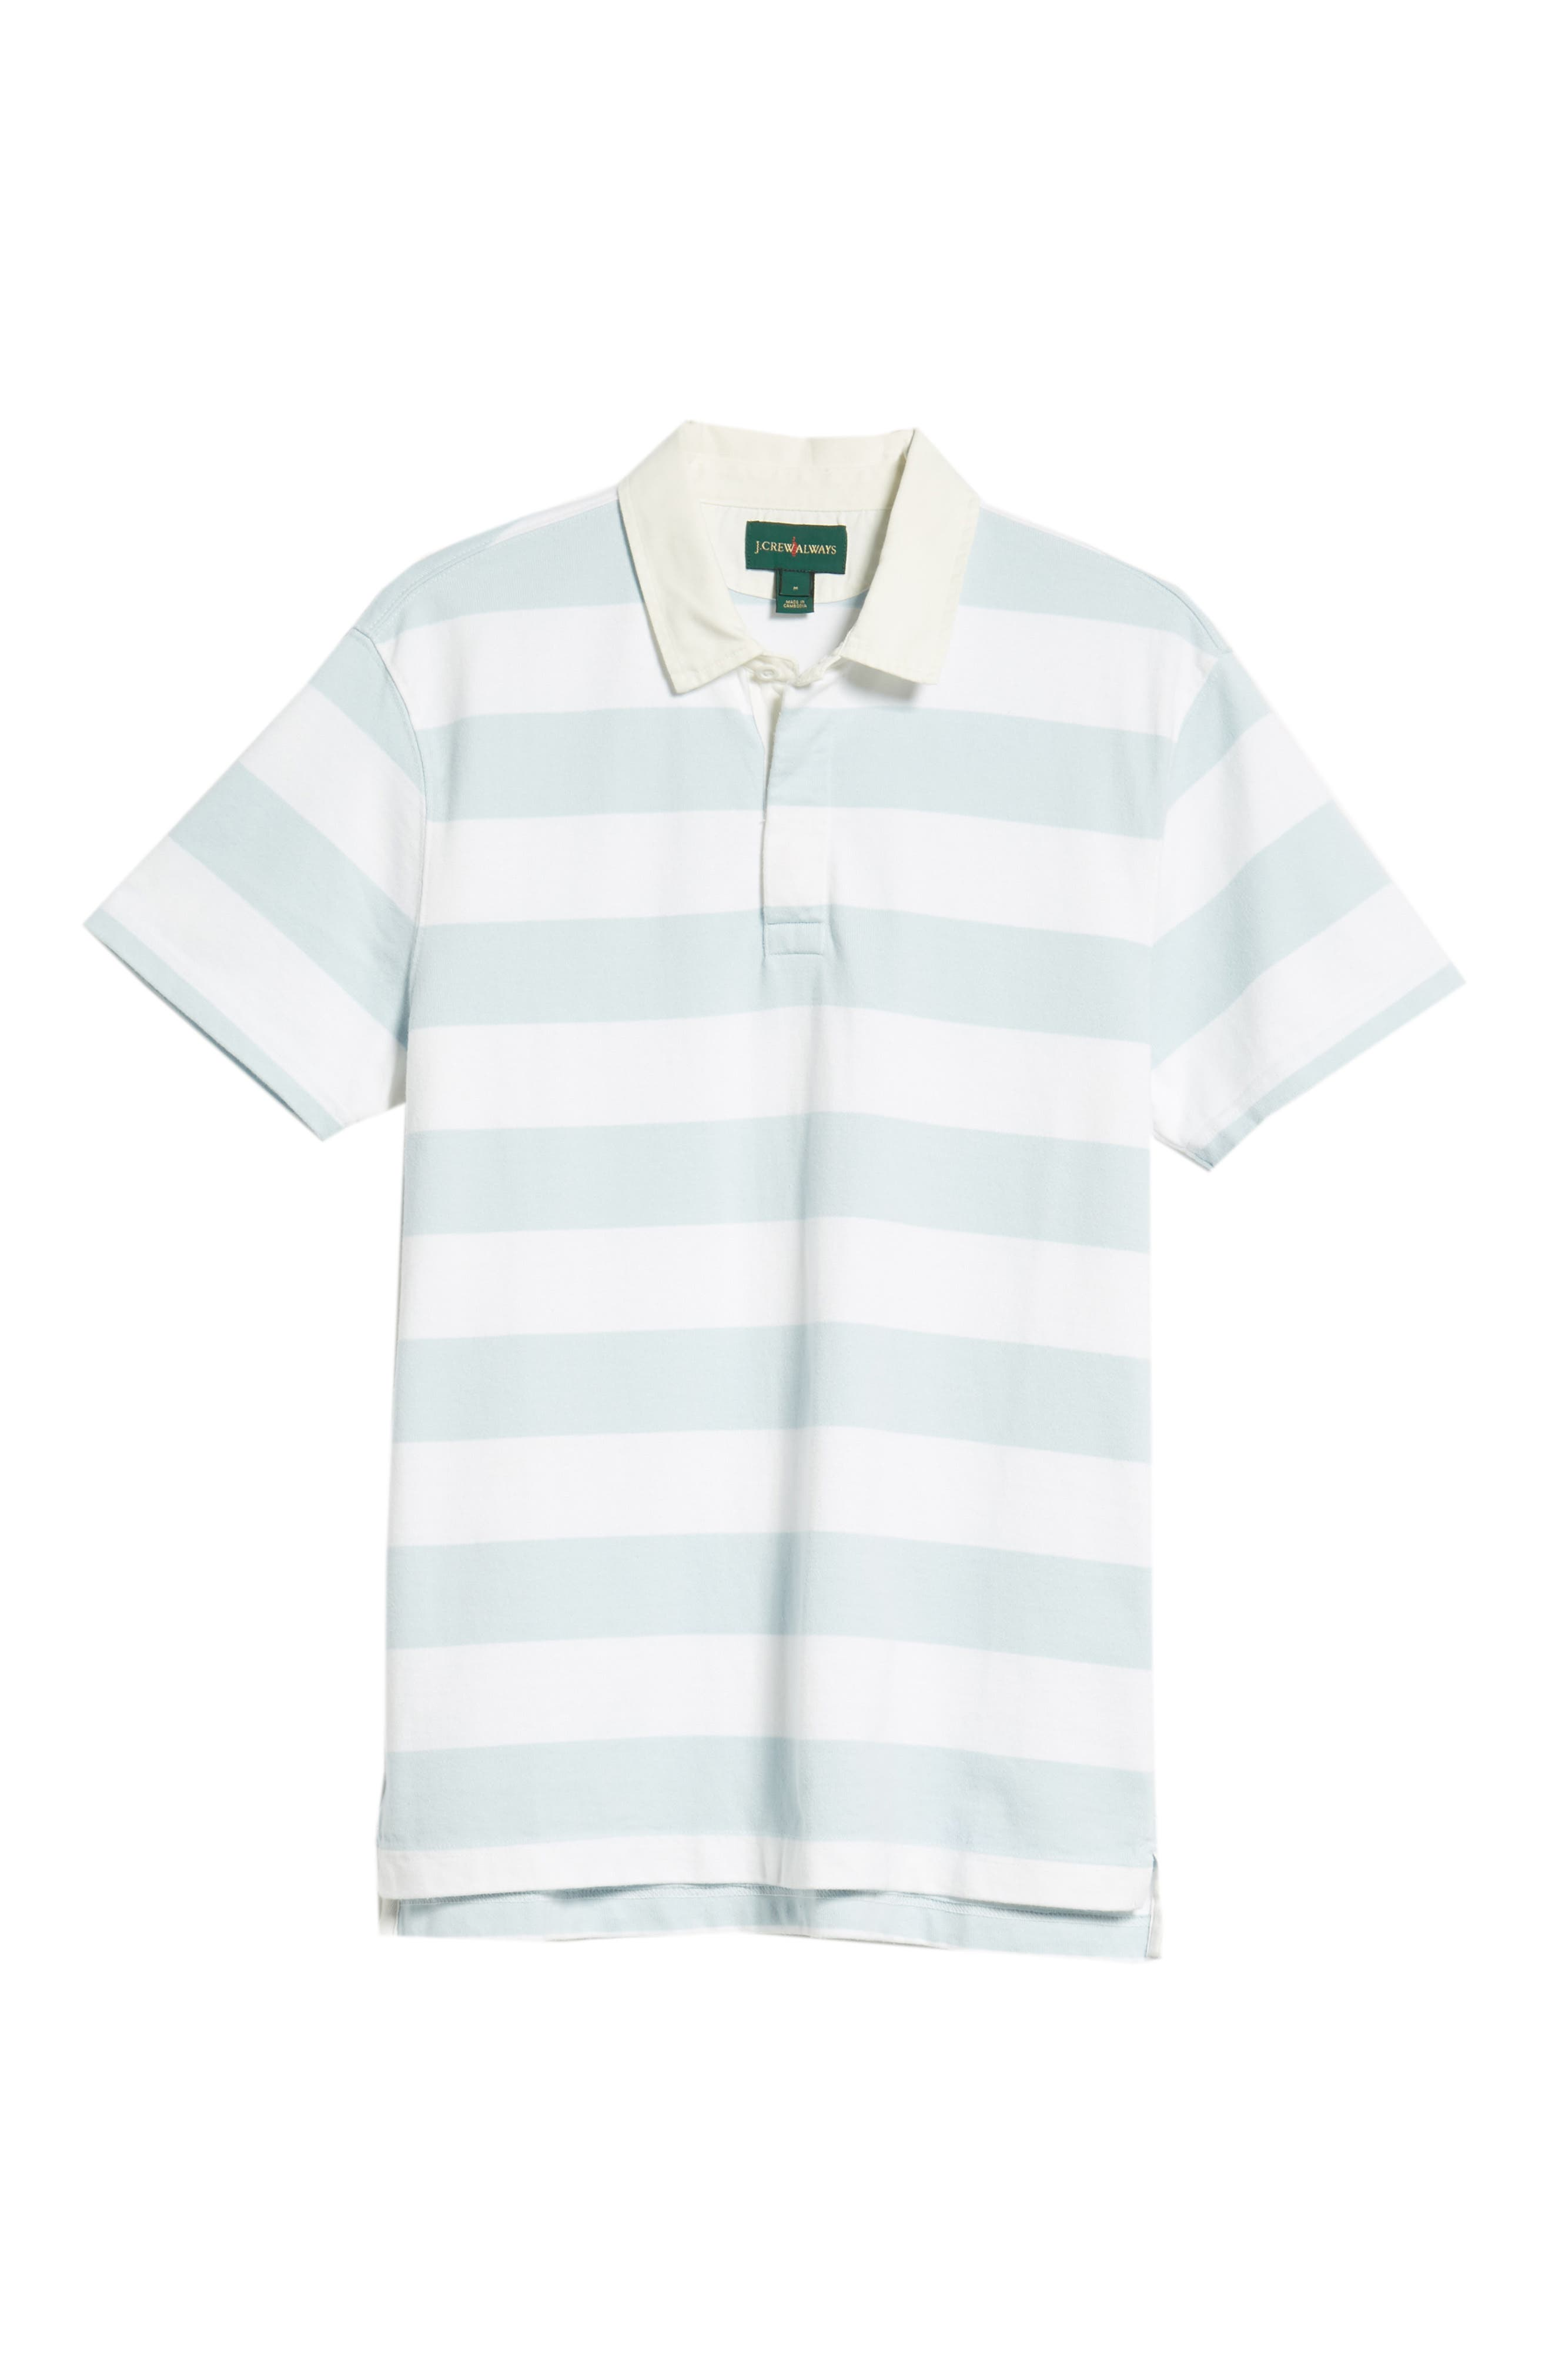 J.CREW,                             1984 Rugby Shirt,                             Alternate thumbnail 6, color,                             100